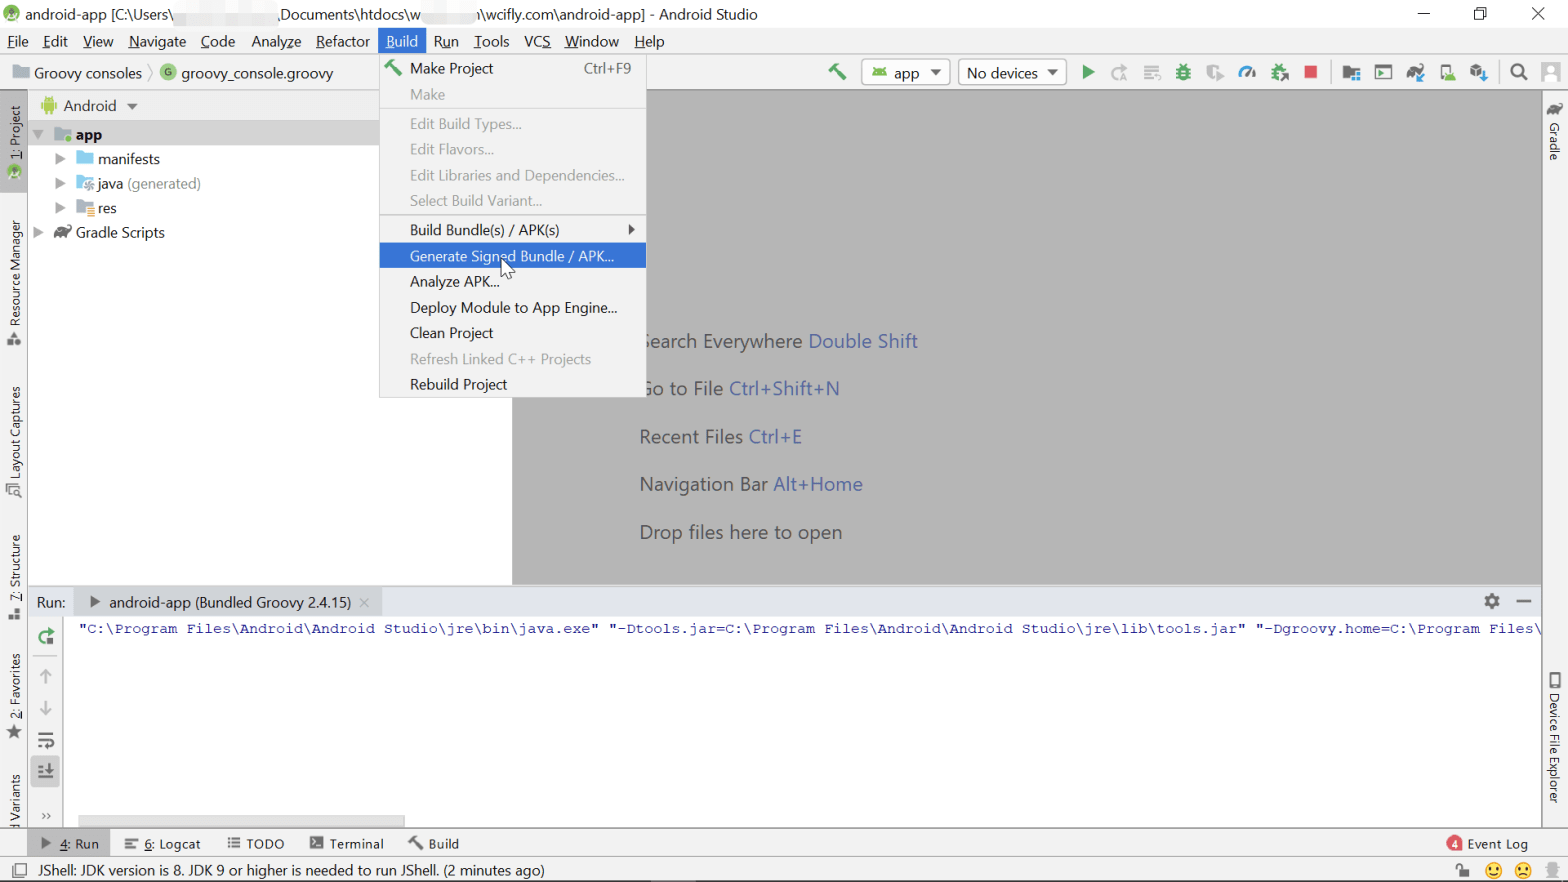 How to make APK from Android Studio? Generate a signed bundle